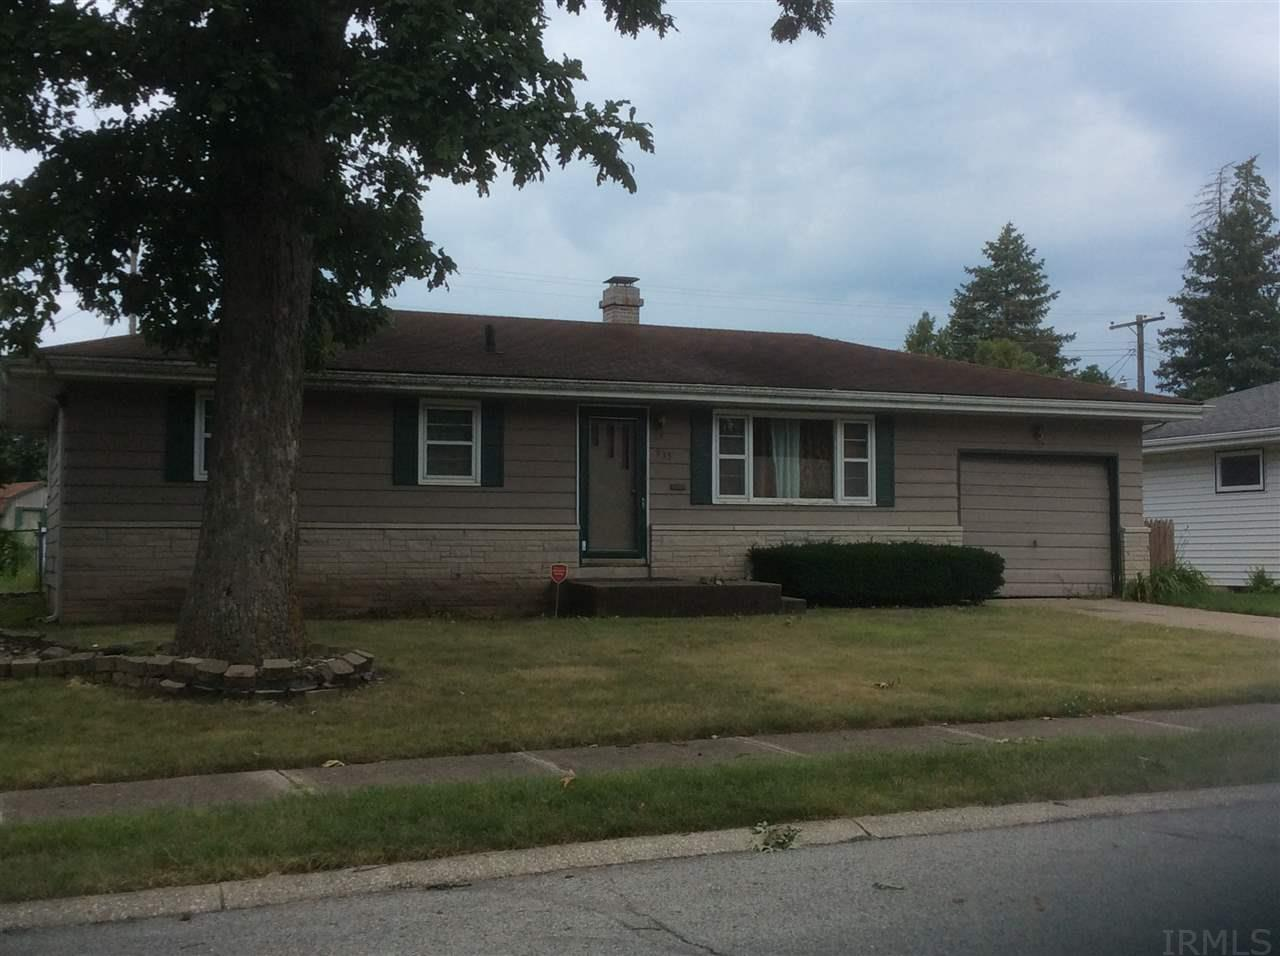 935 Woodbine, South Bend, IN 46628